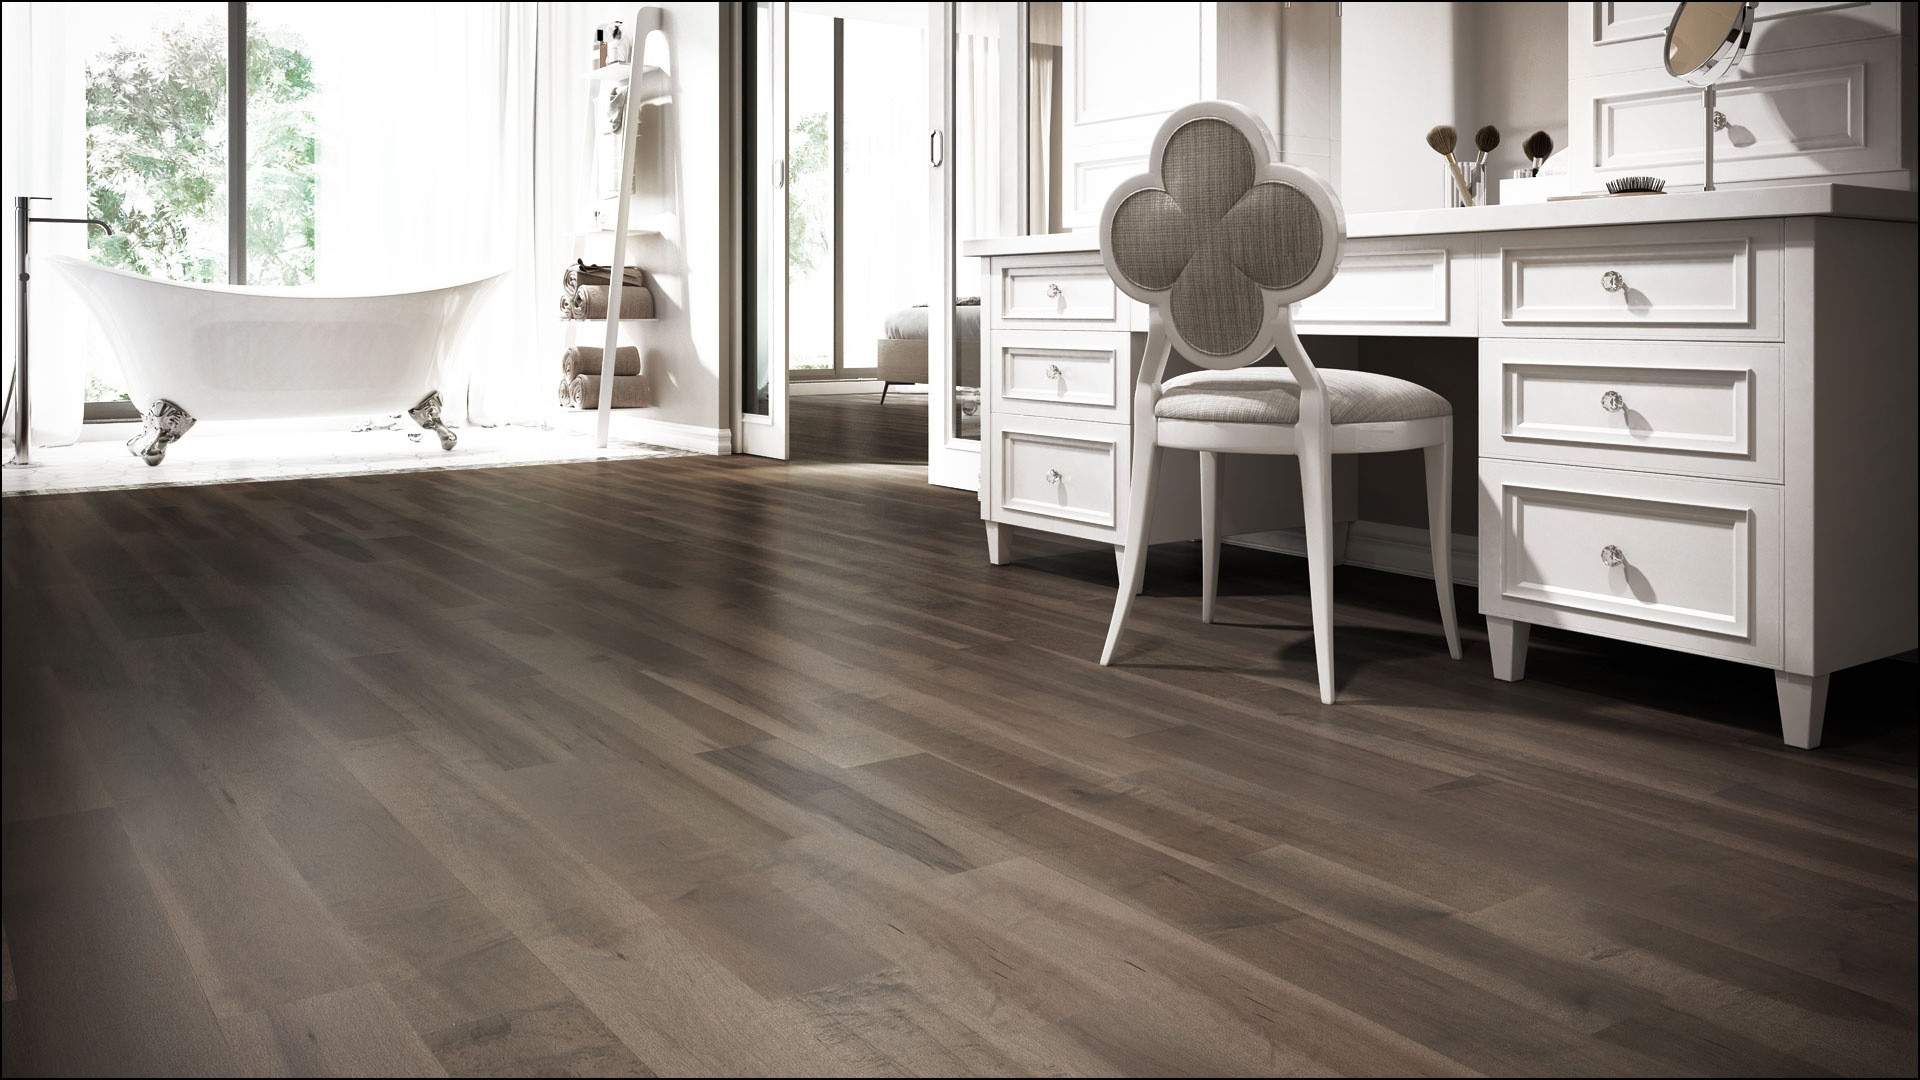 hardwood floor refinishing nj reviews of hardwood flooring suppliers france flooring ideas for hardwood flooring pictures in homes images black and white laminate flooring beautiful splendid exterior of hardwood